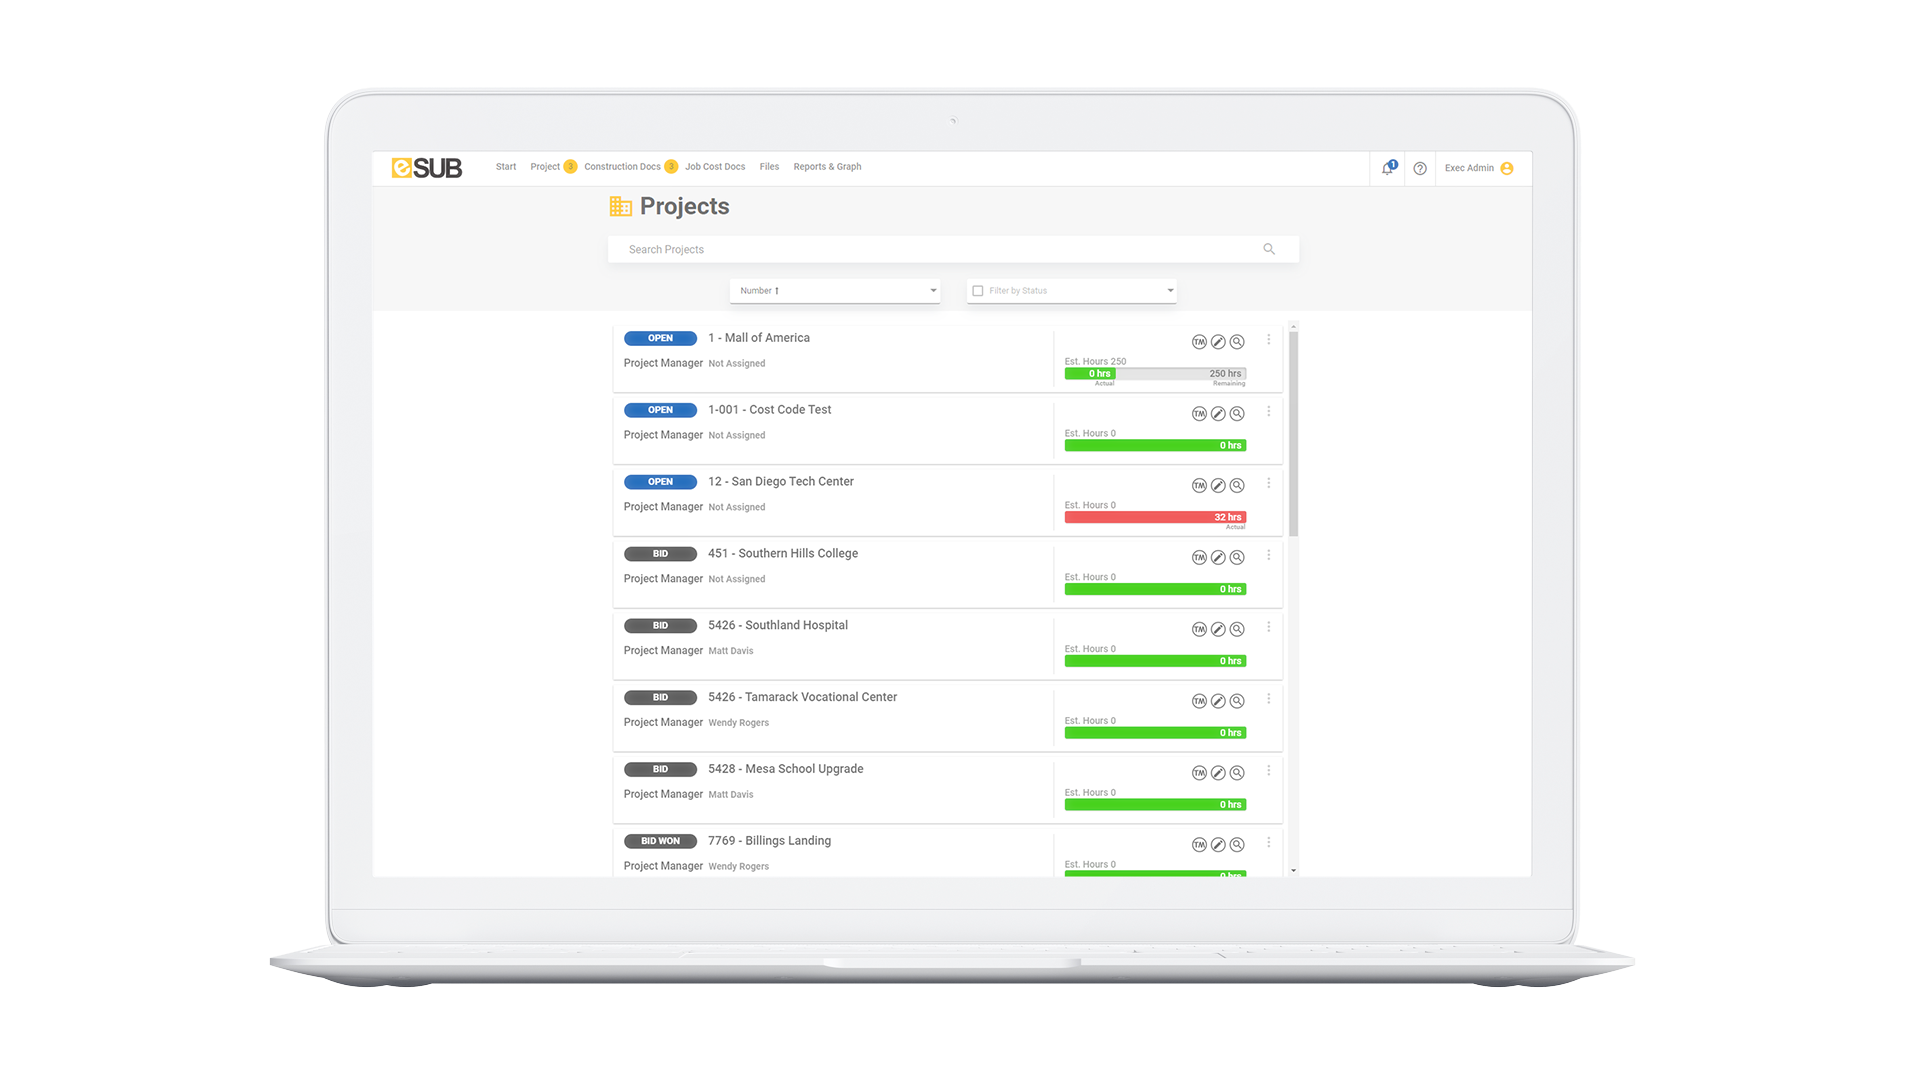 Manage all projects in one centralized location